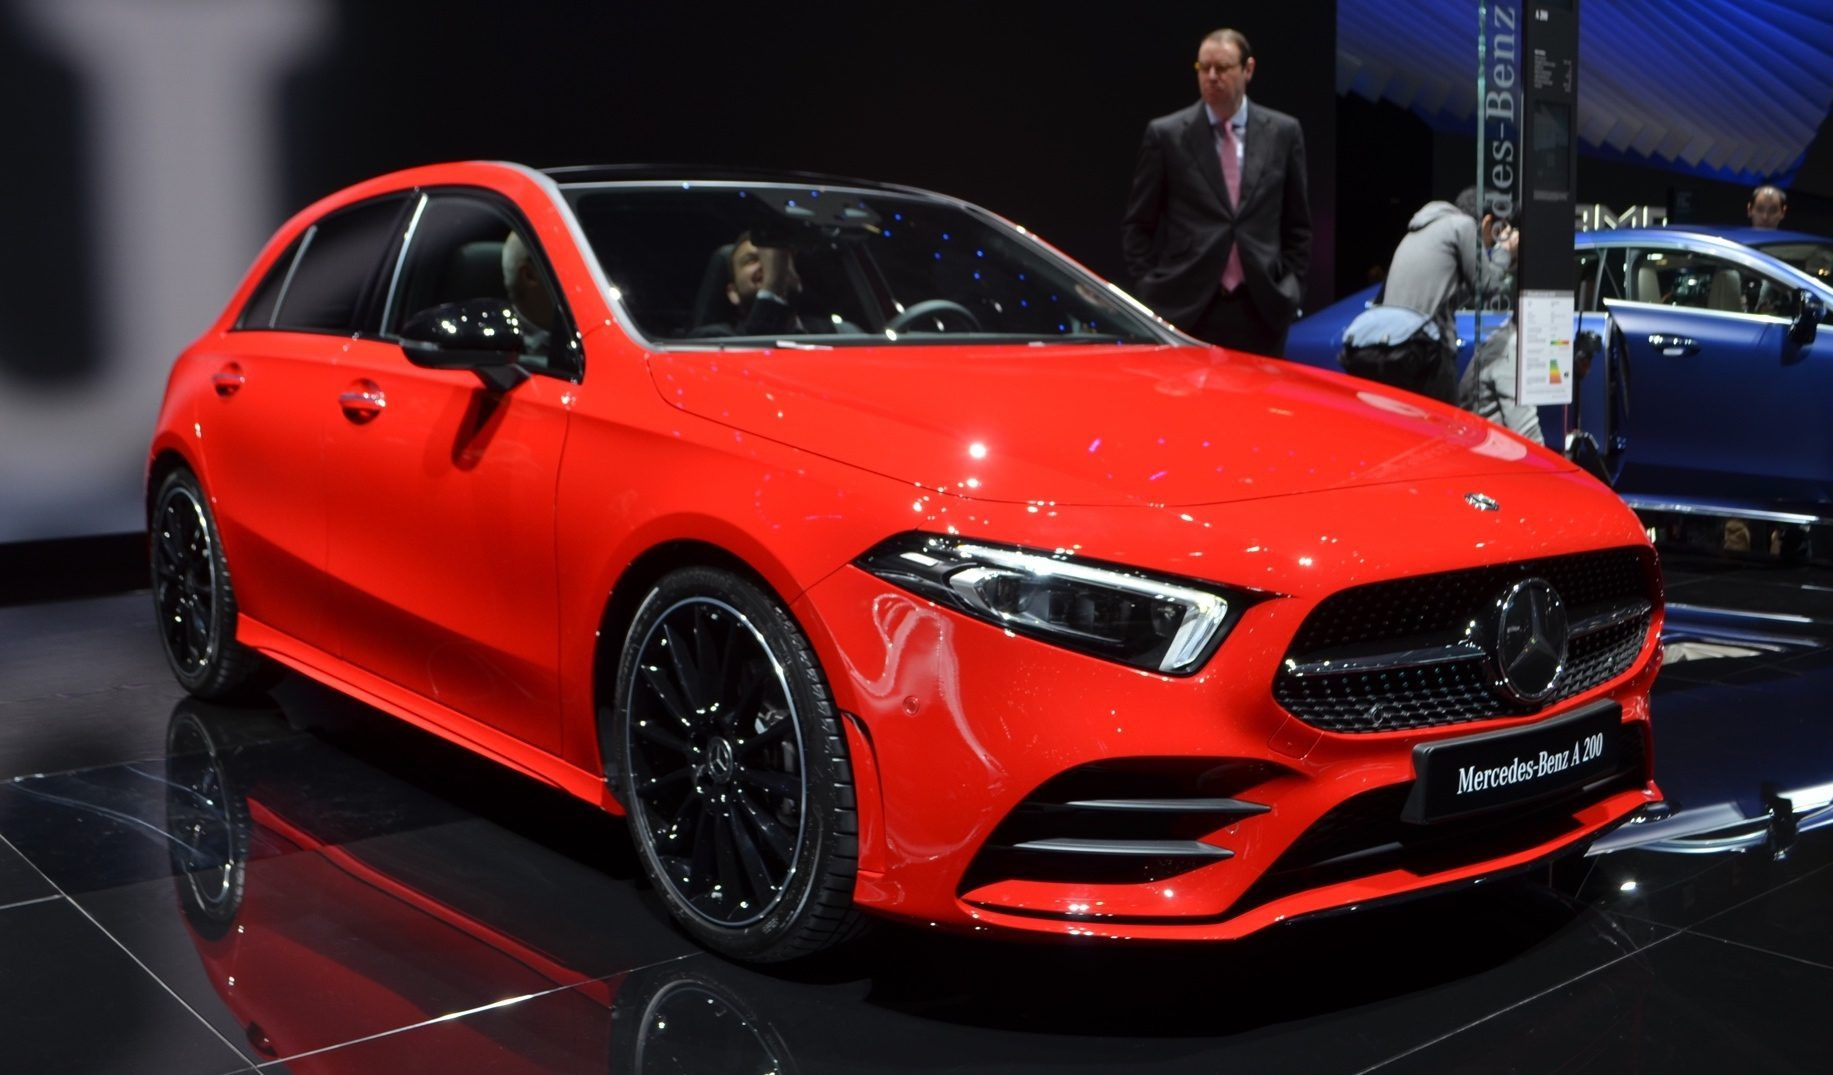 Mercedes Amg A35 To Take On Golf R With 300 Hp 223 Kw With